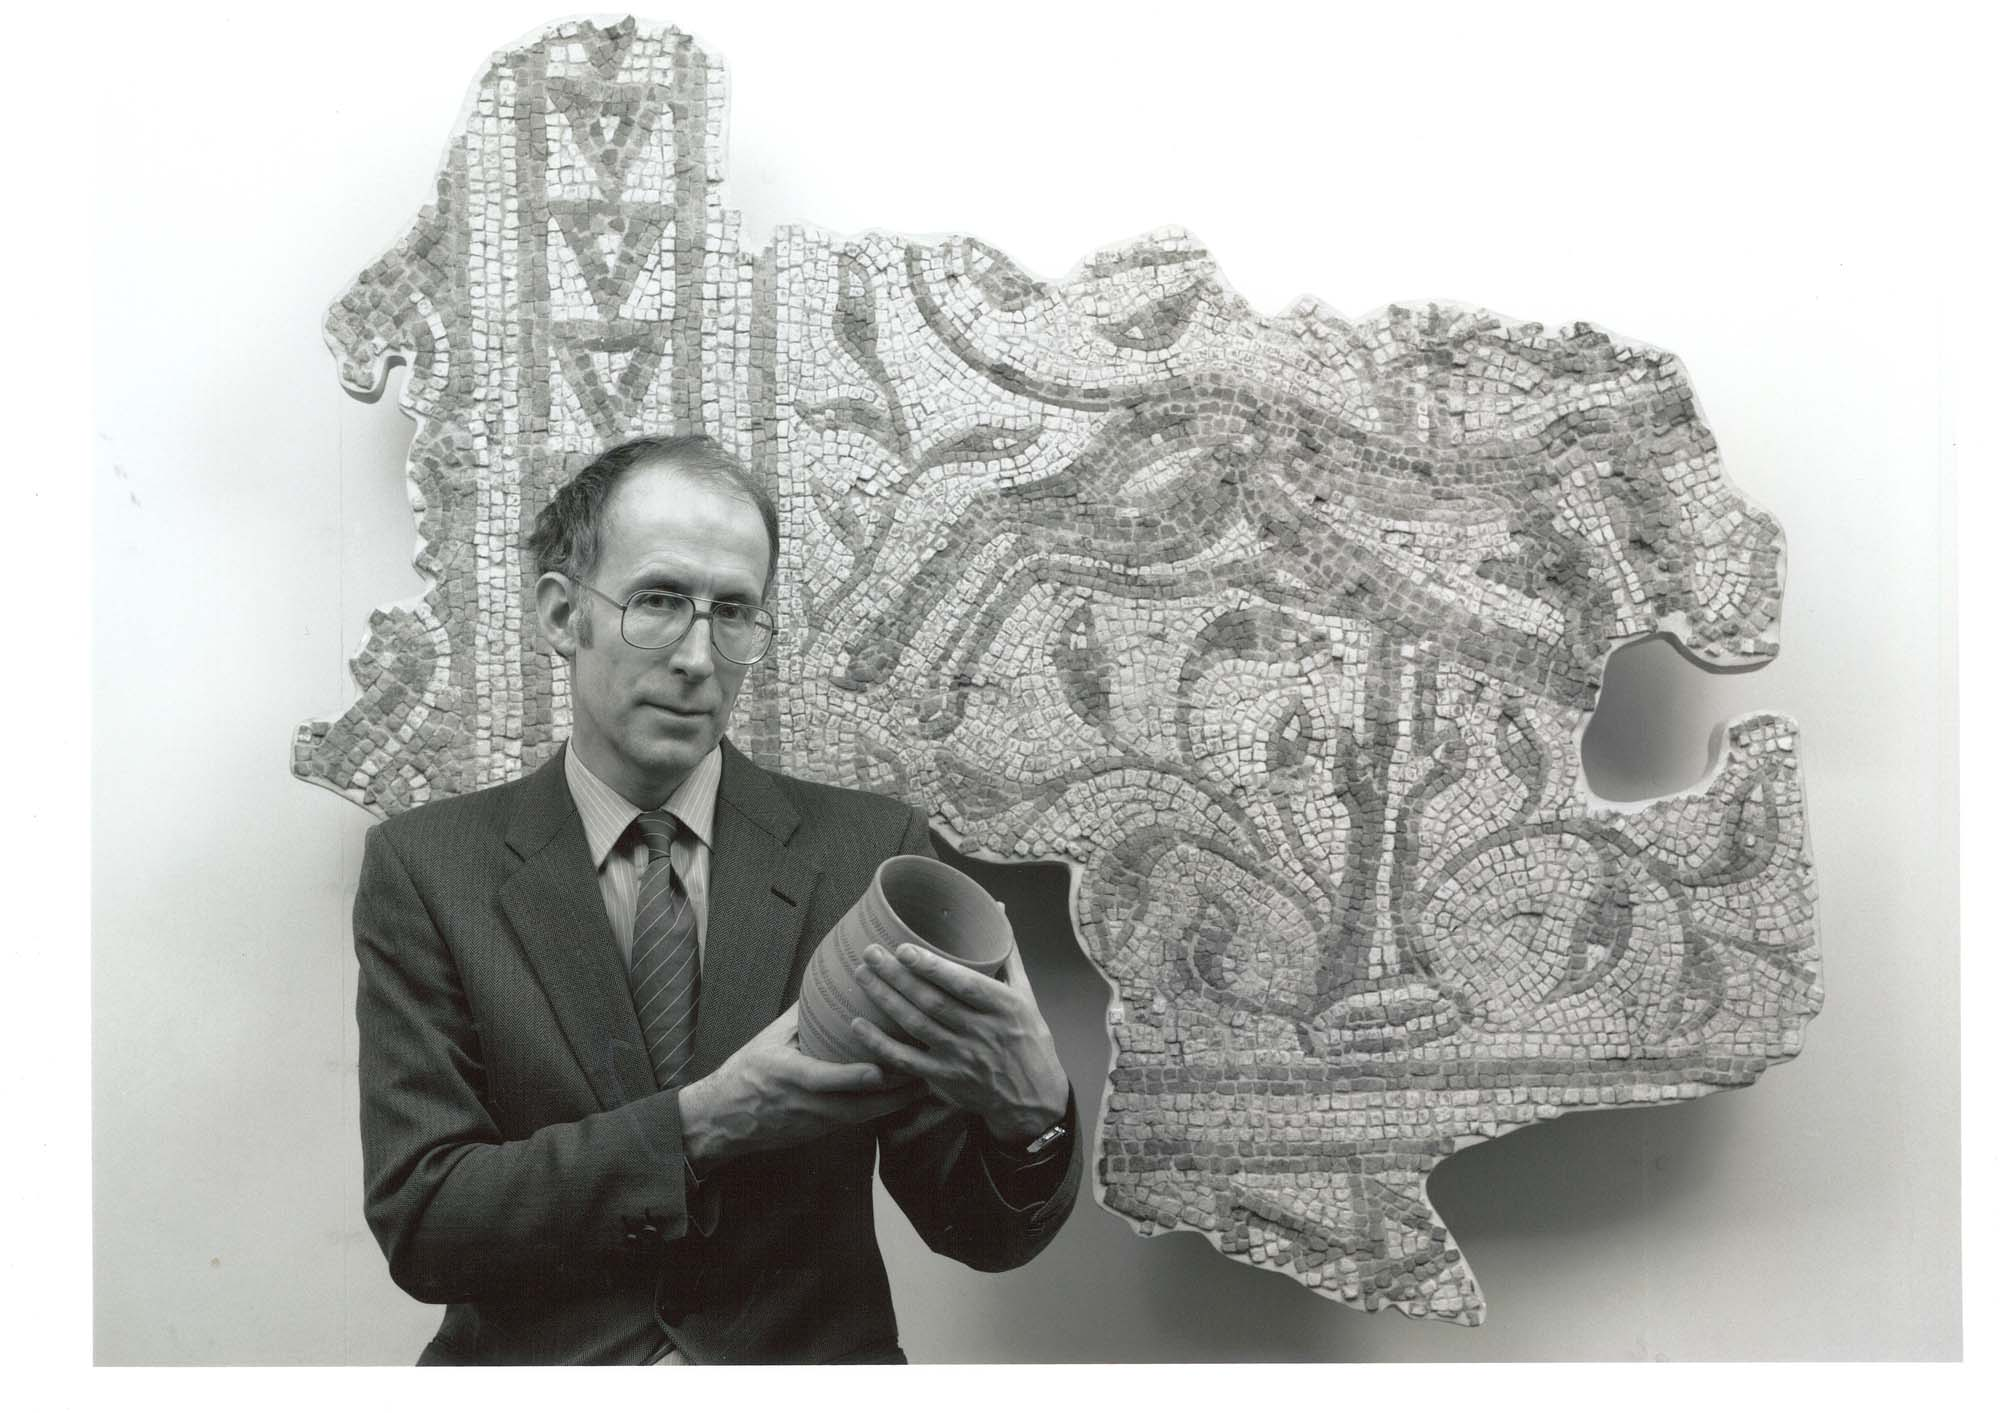 a black and white photo of a man holding a beaker in front of a wall mounted mosaic